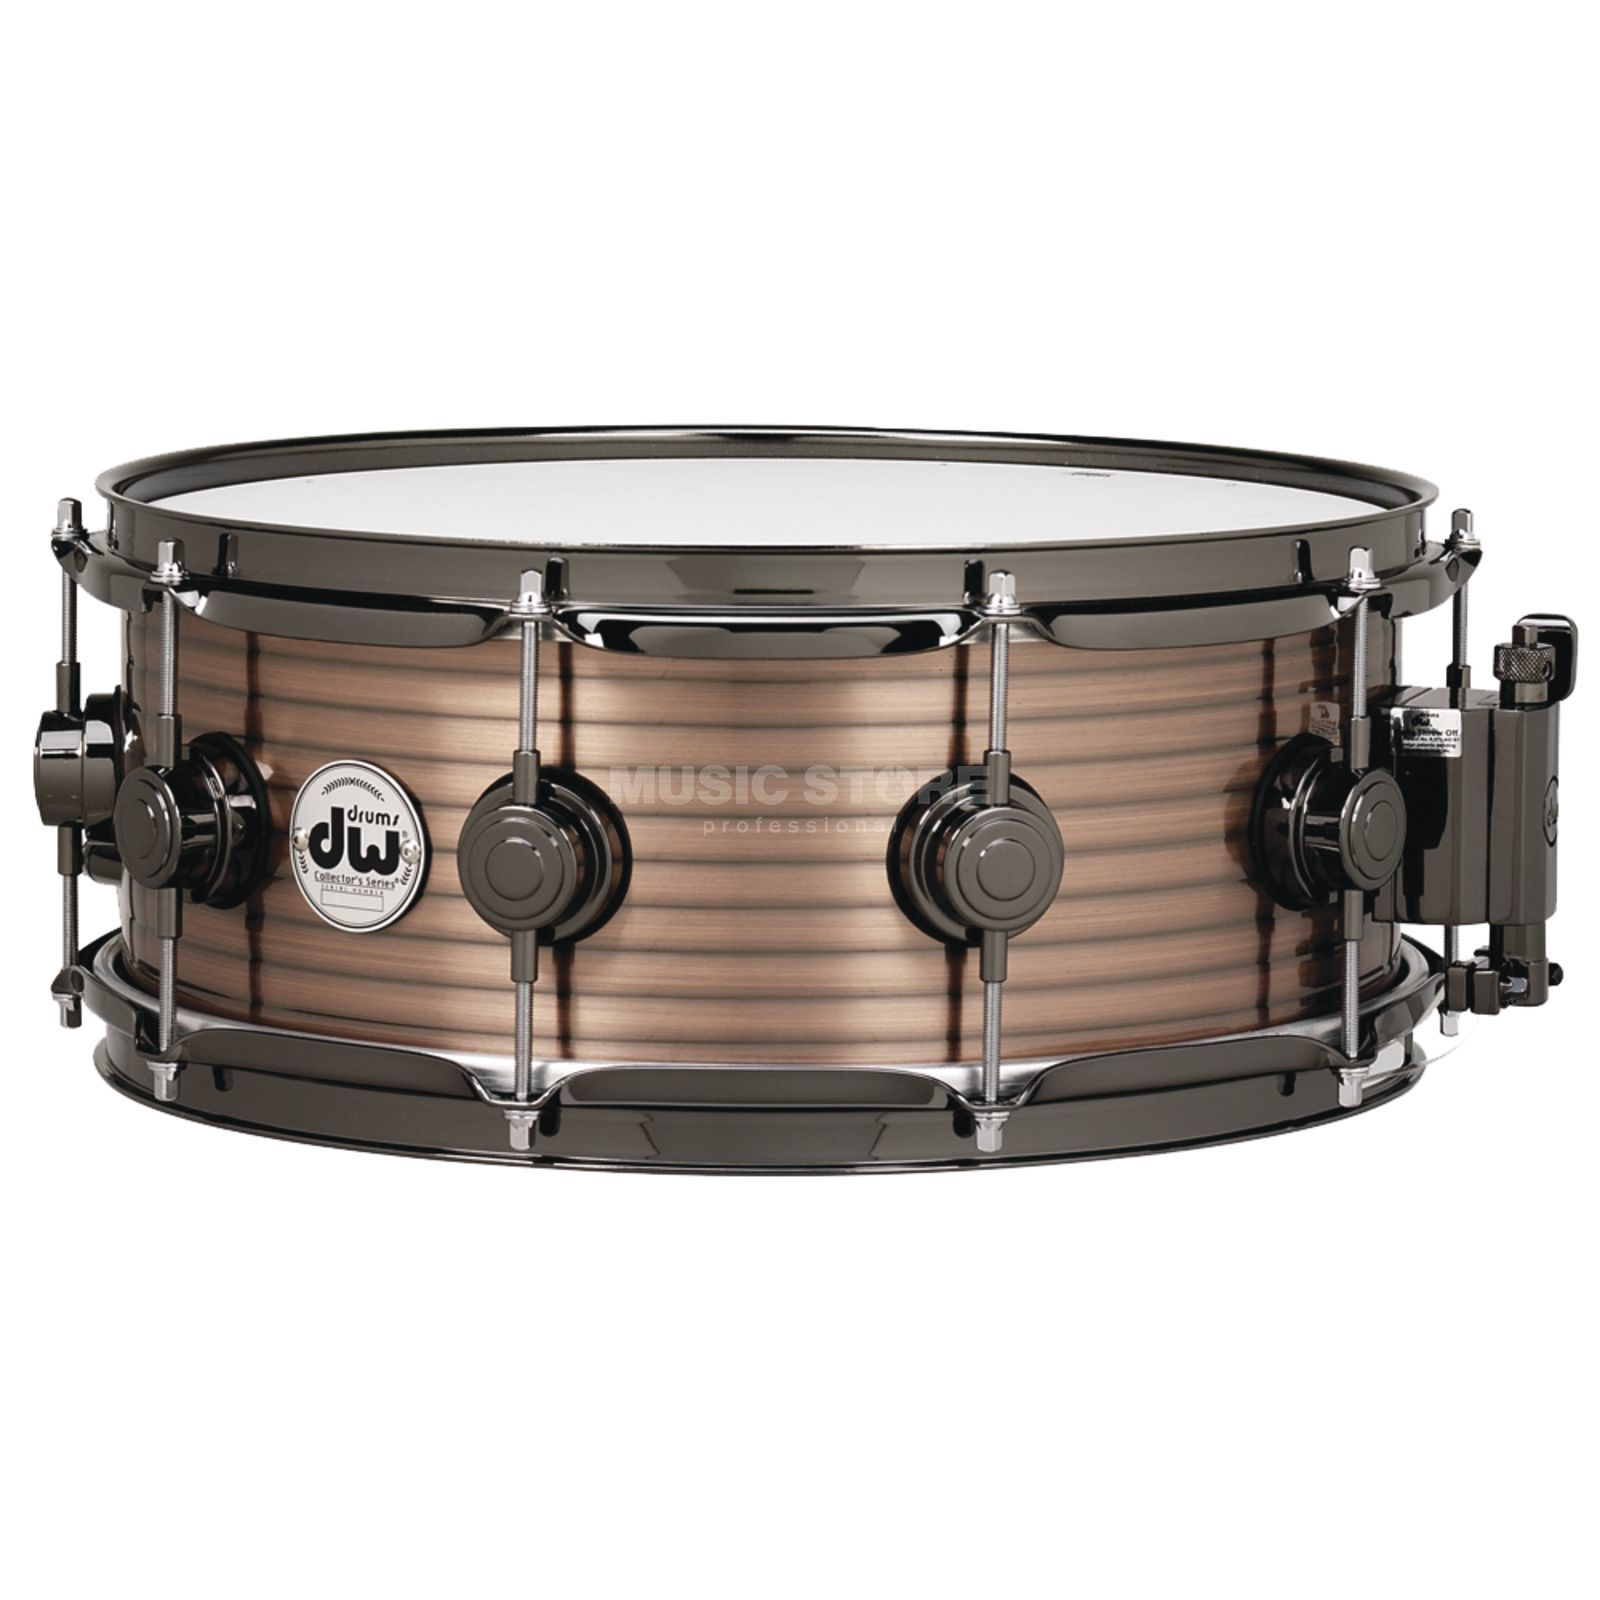 Drum Workshop Vintage Copper Snare 14x5,5 Copper over Steel Produktbild